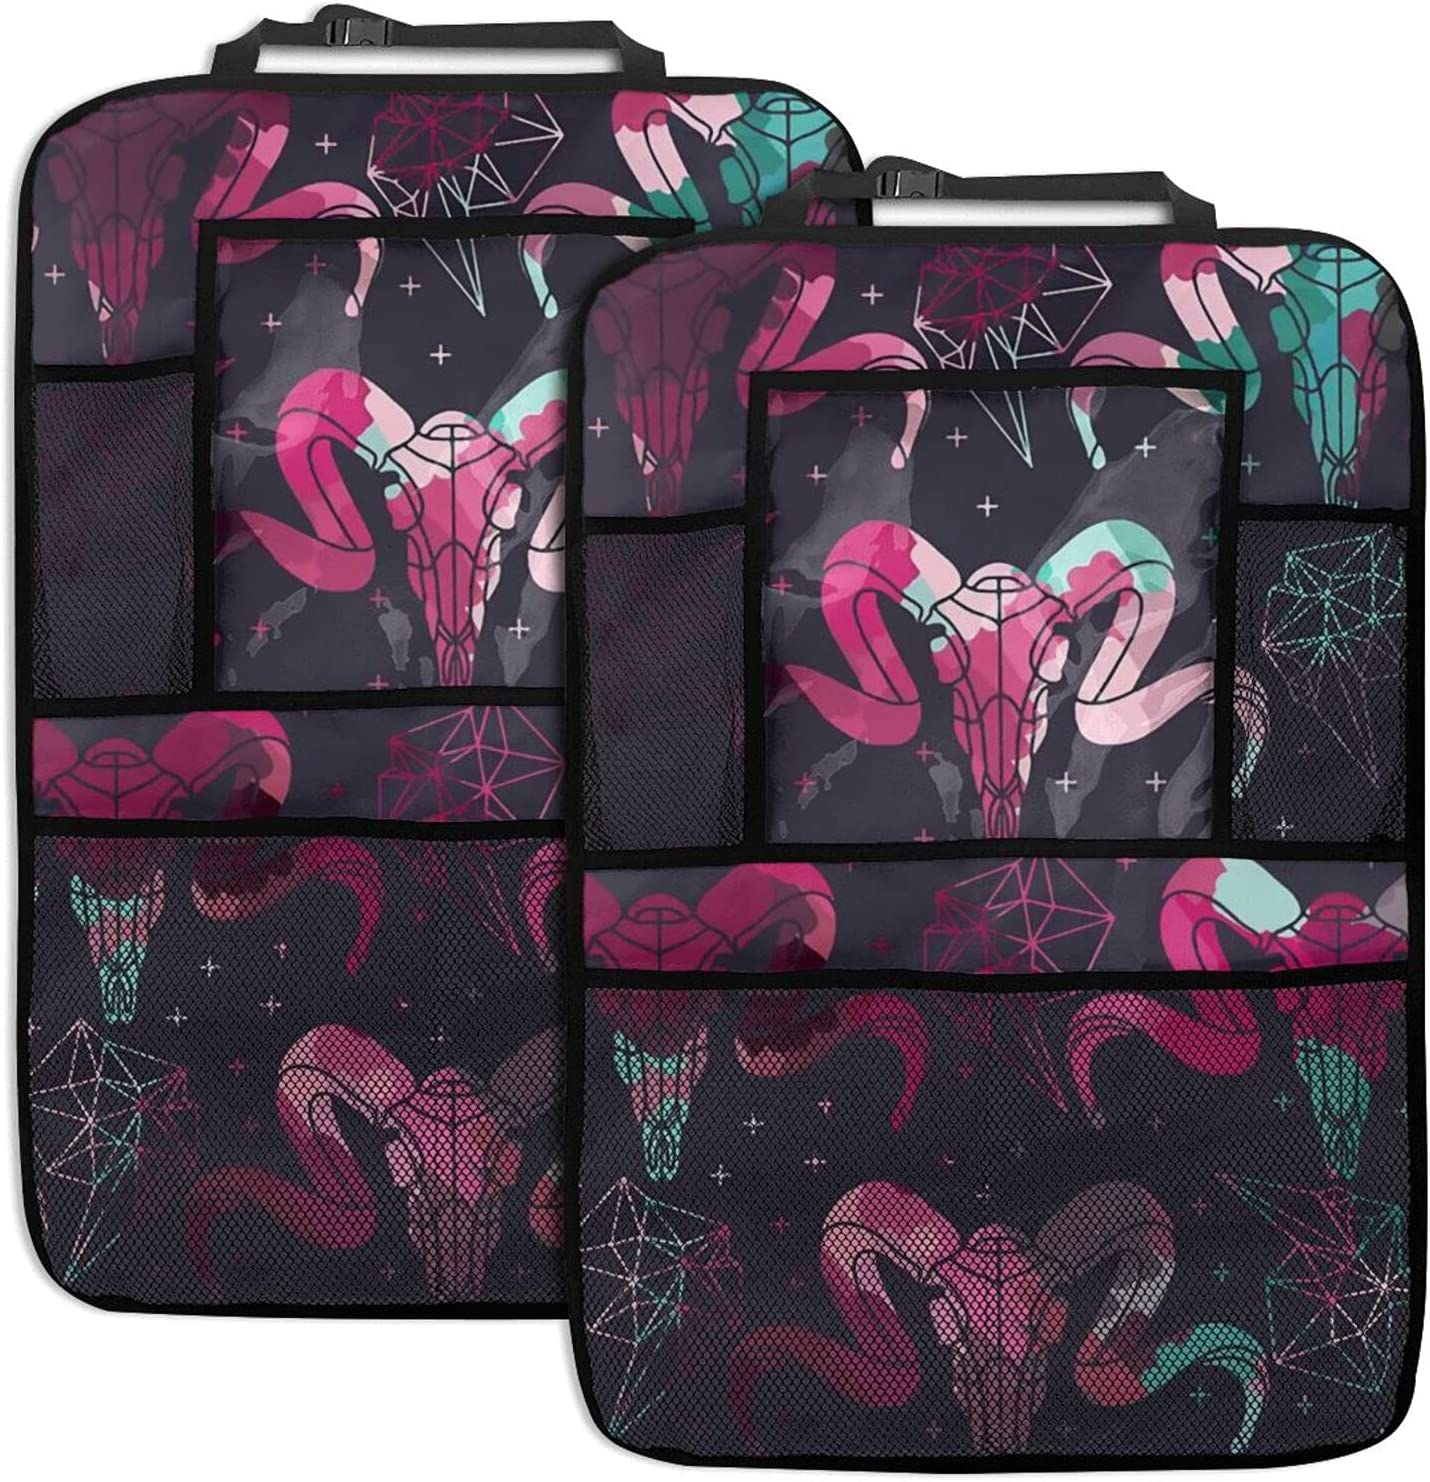 Car Backseat Organizer 2 Super beauty product 5% OFF restock quality top Pack Cow Seat Skull Stora Pink Back